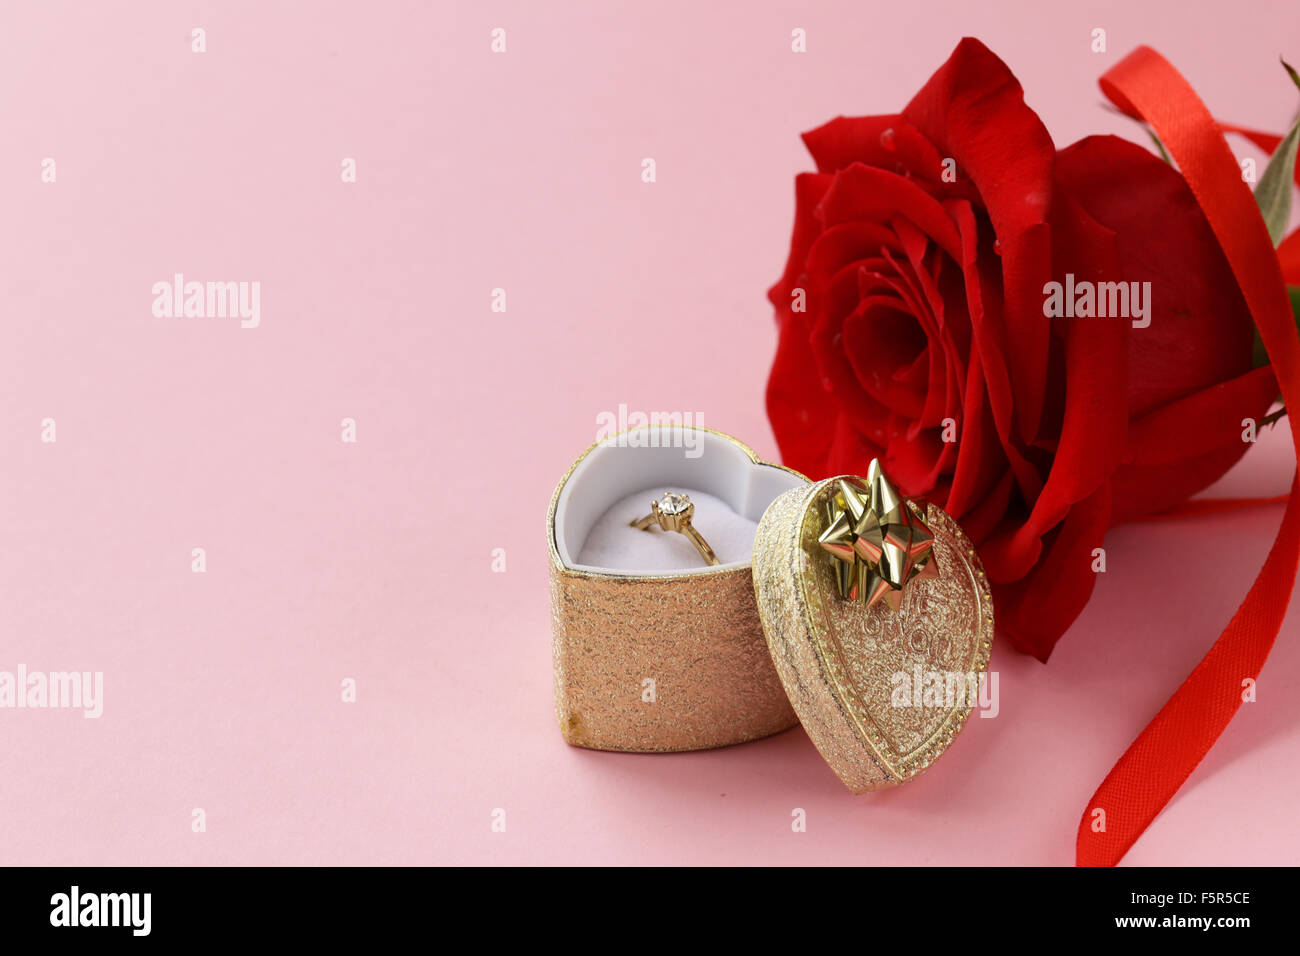 Red Rose Flower Gold Ring Stock Photos & Red Rose Flower Gold Ring ...